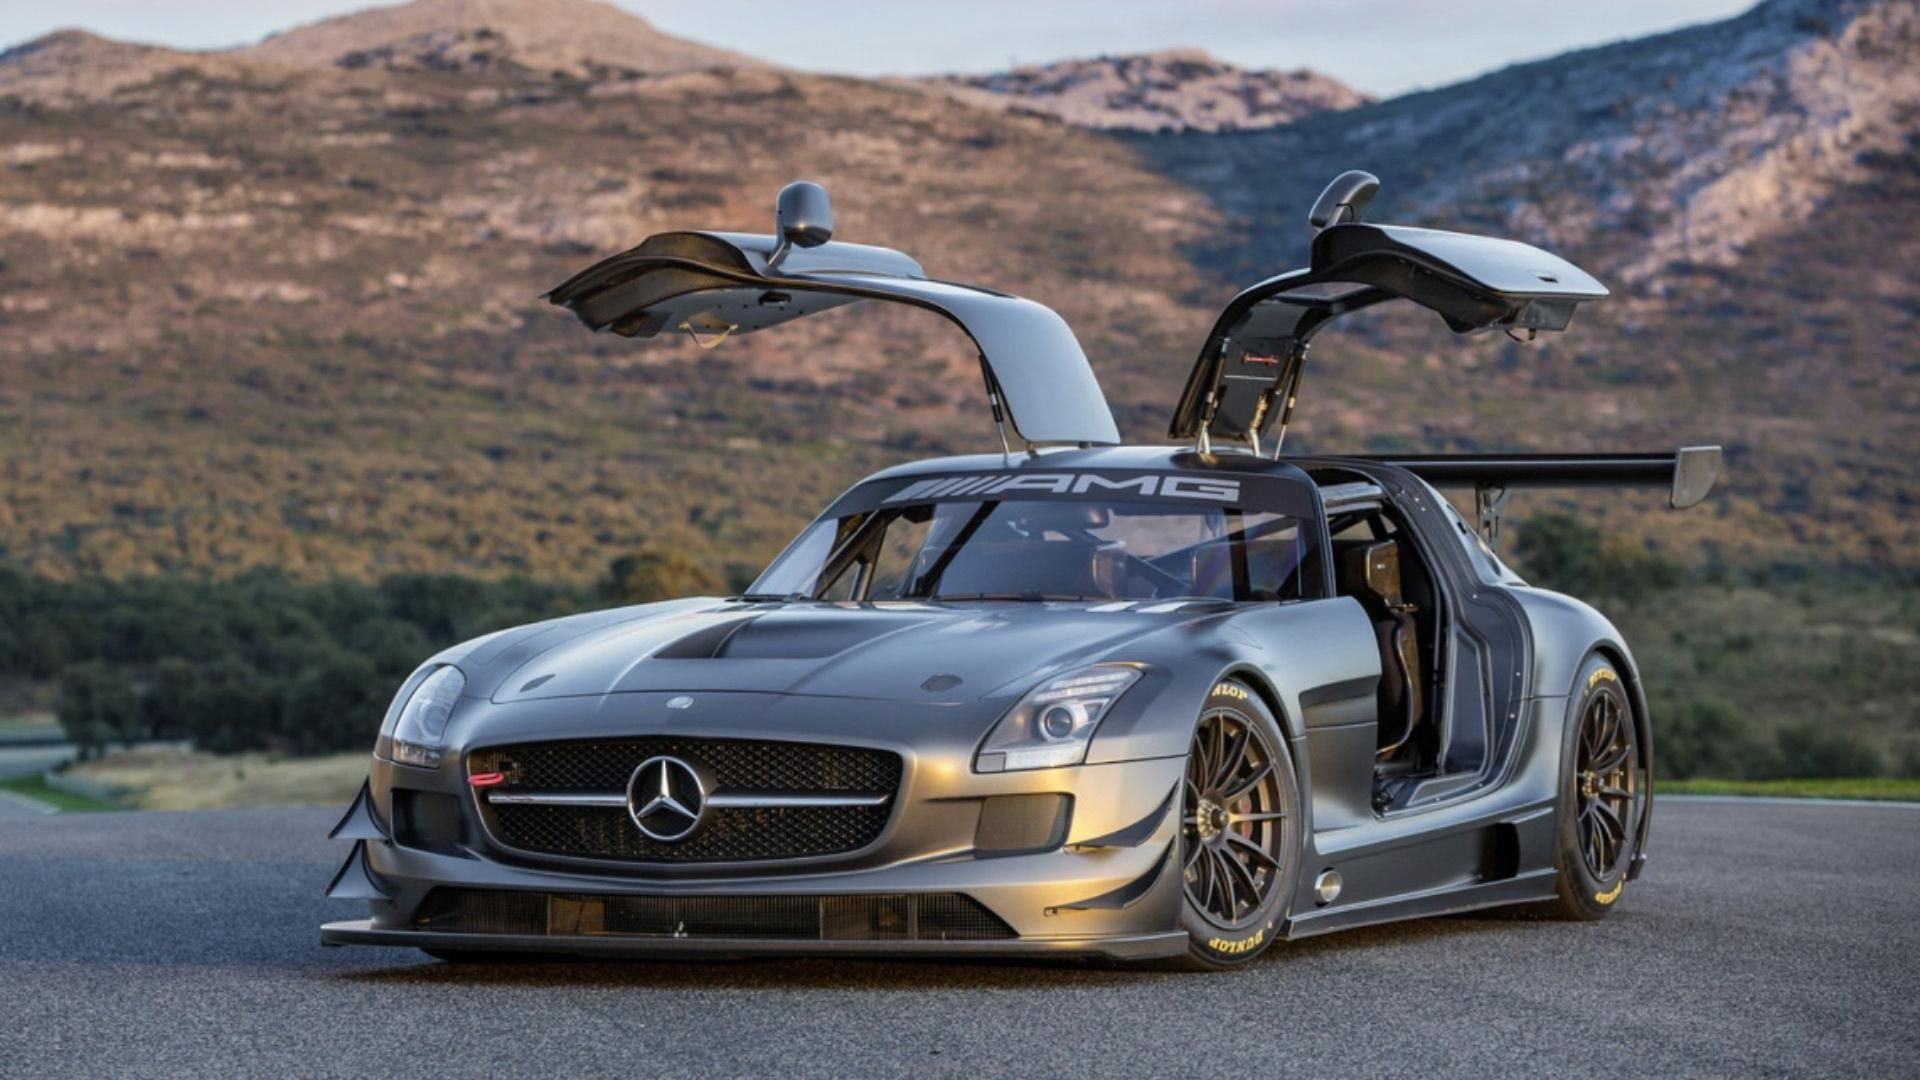 Mercedes Benz Sls Amg 45th Anniversary Edition On Hd Wallpapers